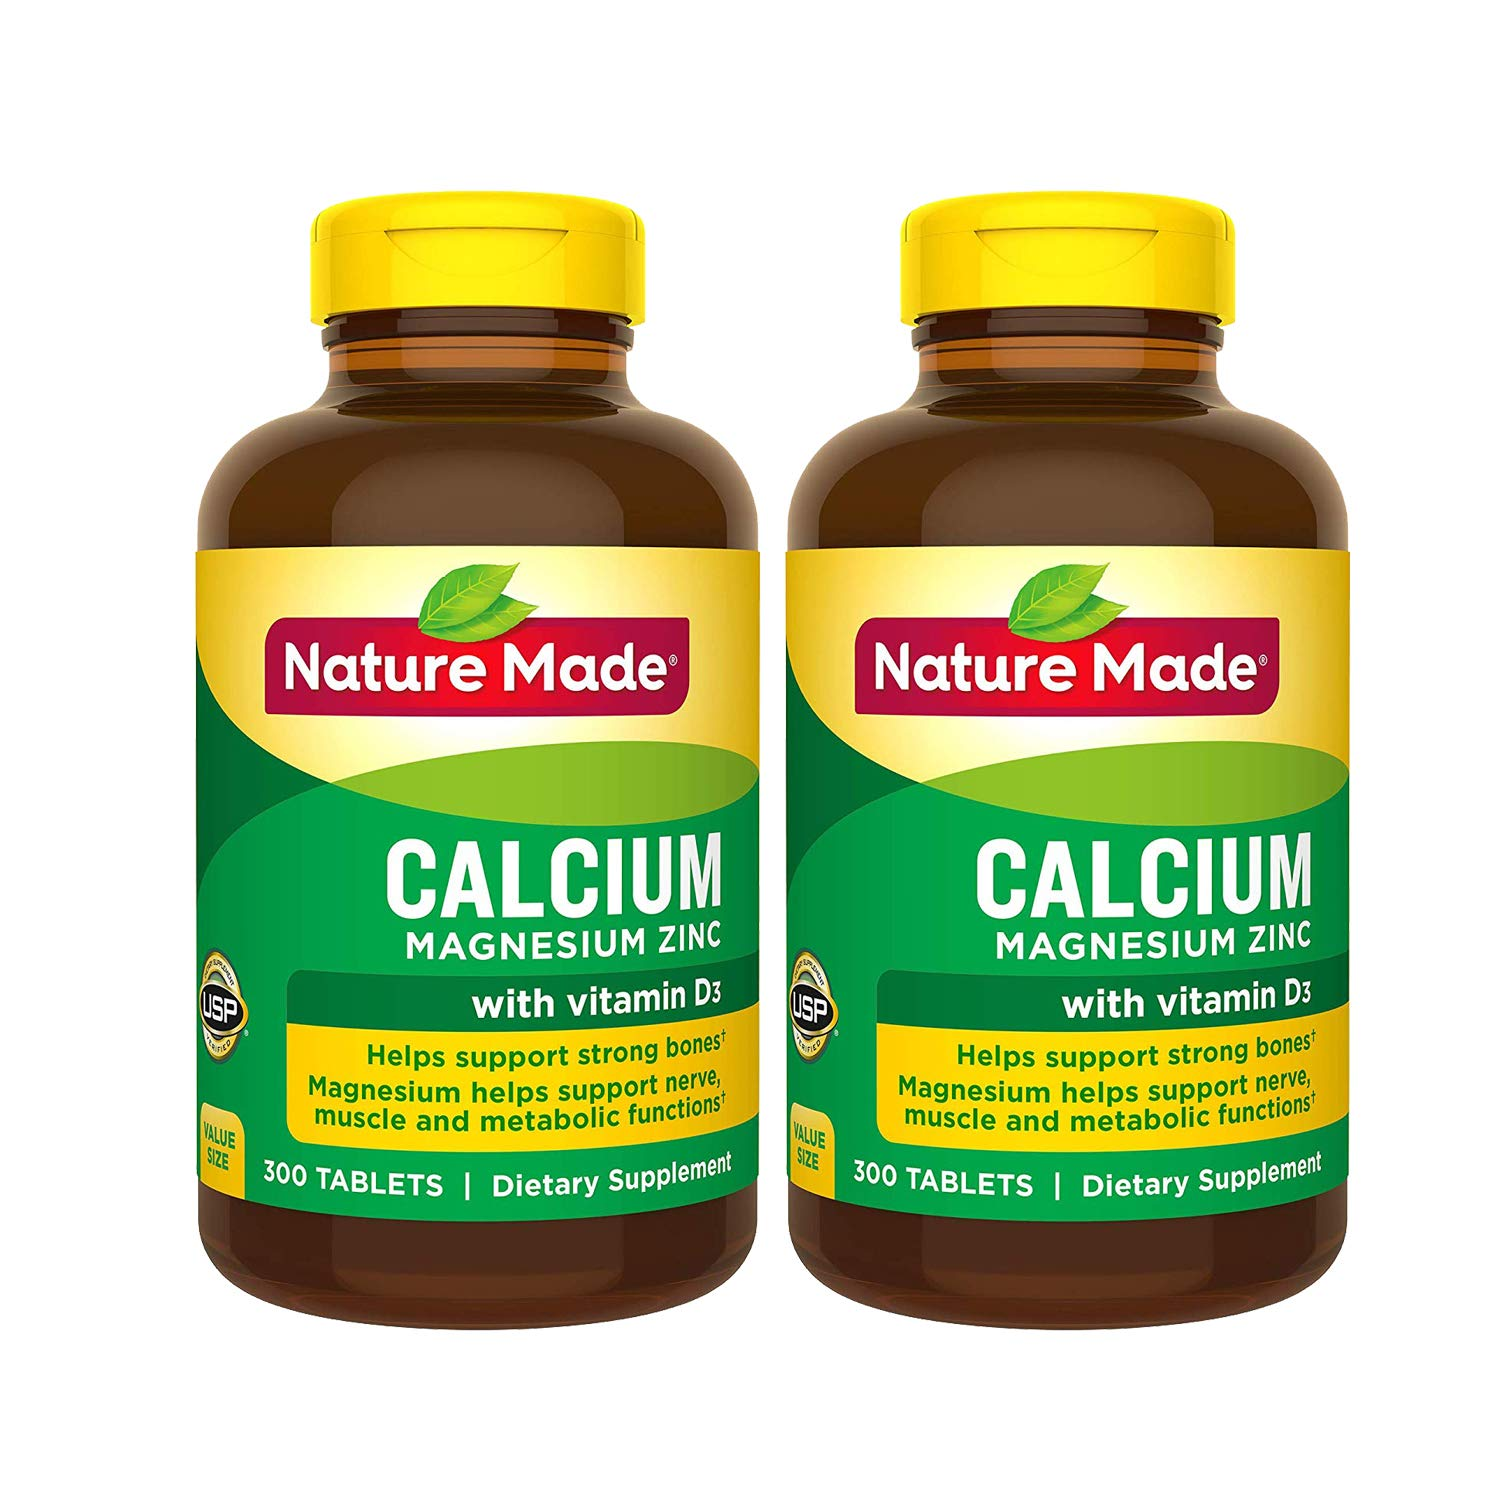 Calcium, Magnesium Zinc with Vitamin D3, 600 Count for Bone Health (Packaging May Vary)